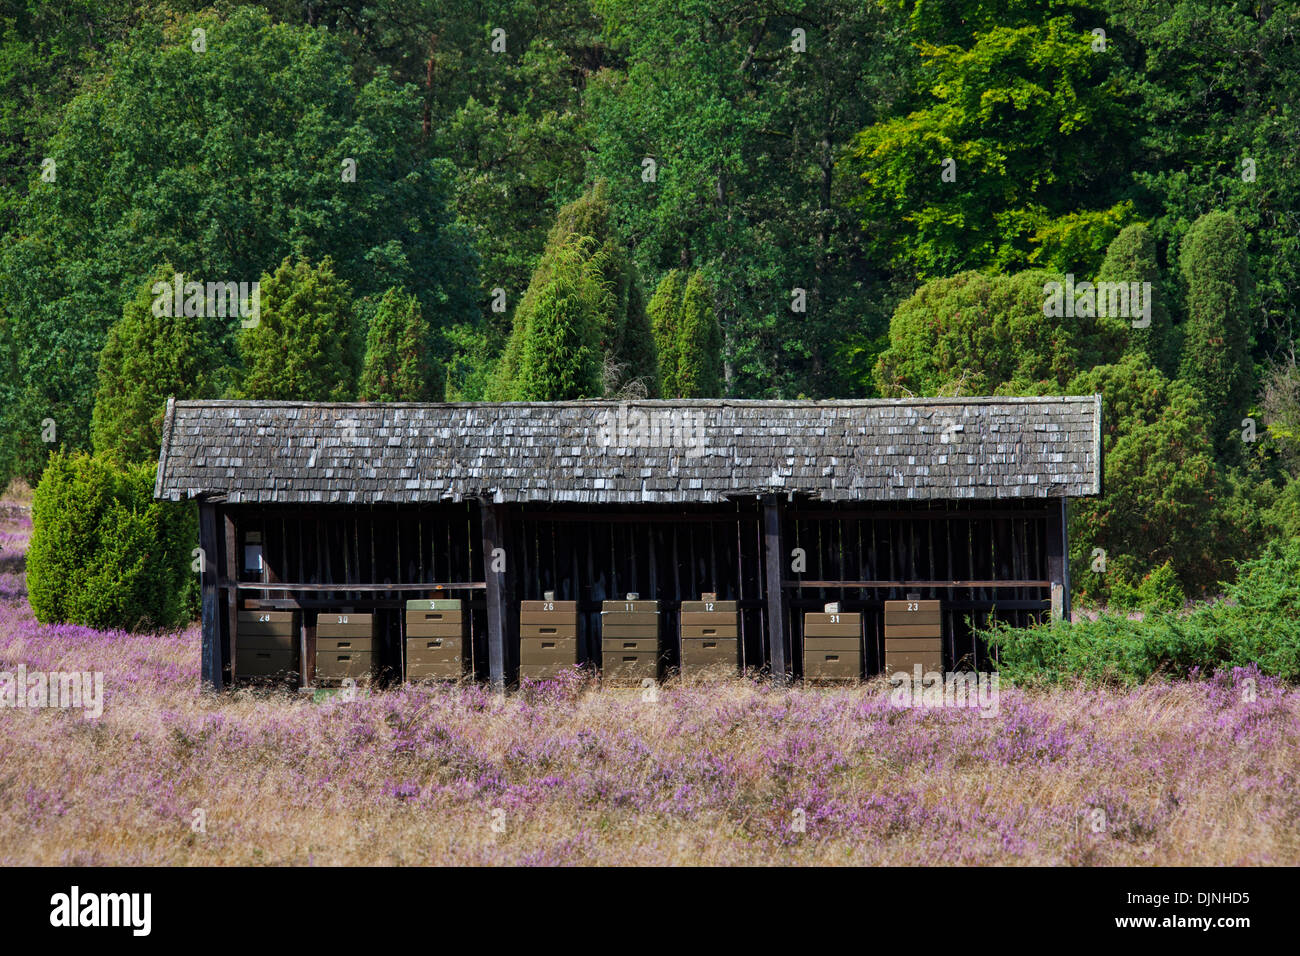 Bee hives / beehives for honey bees of apiary in heathland of the Lüneburg Heath / Lunenburg Heath, Lower Saxony, Germany - Stock Image